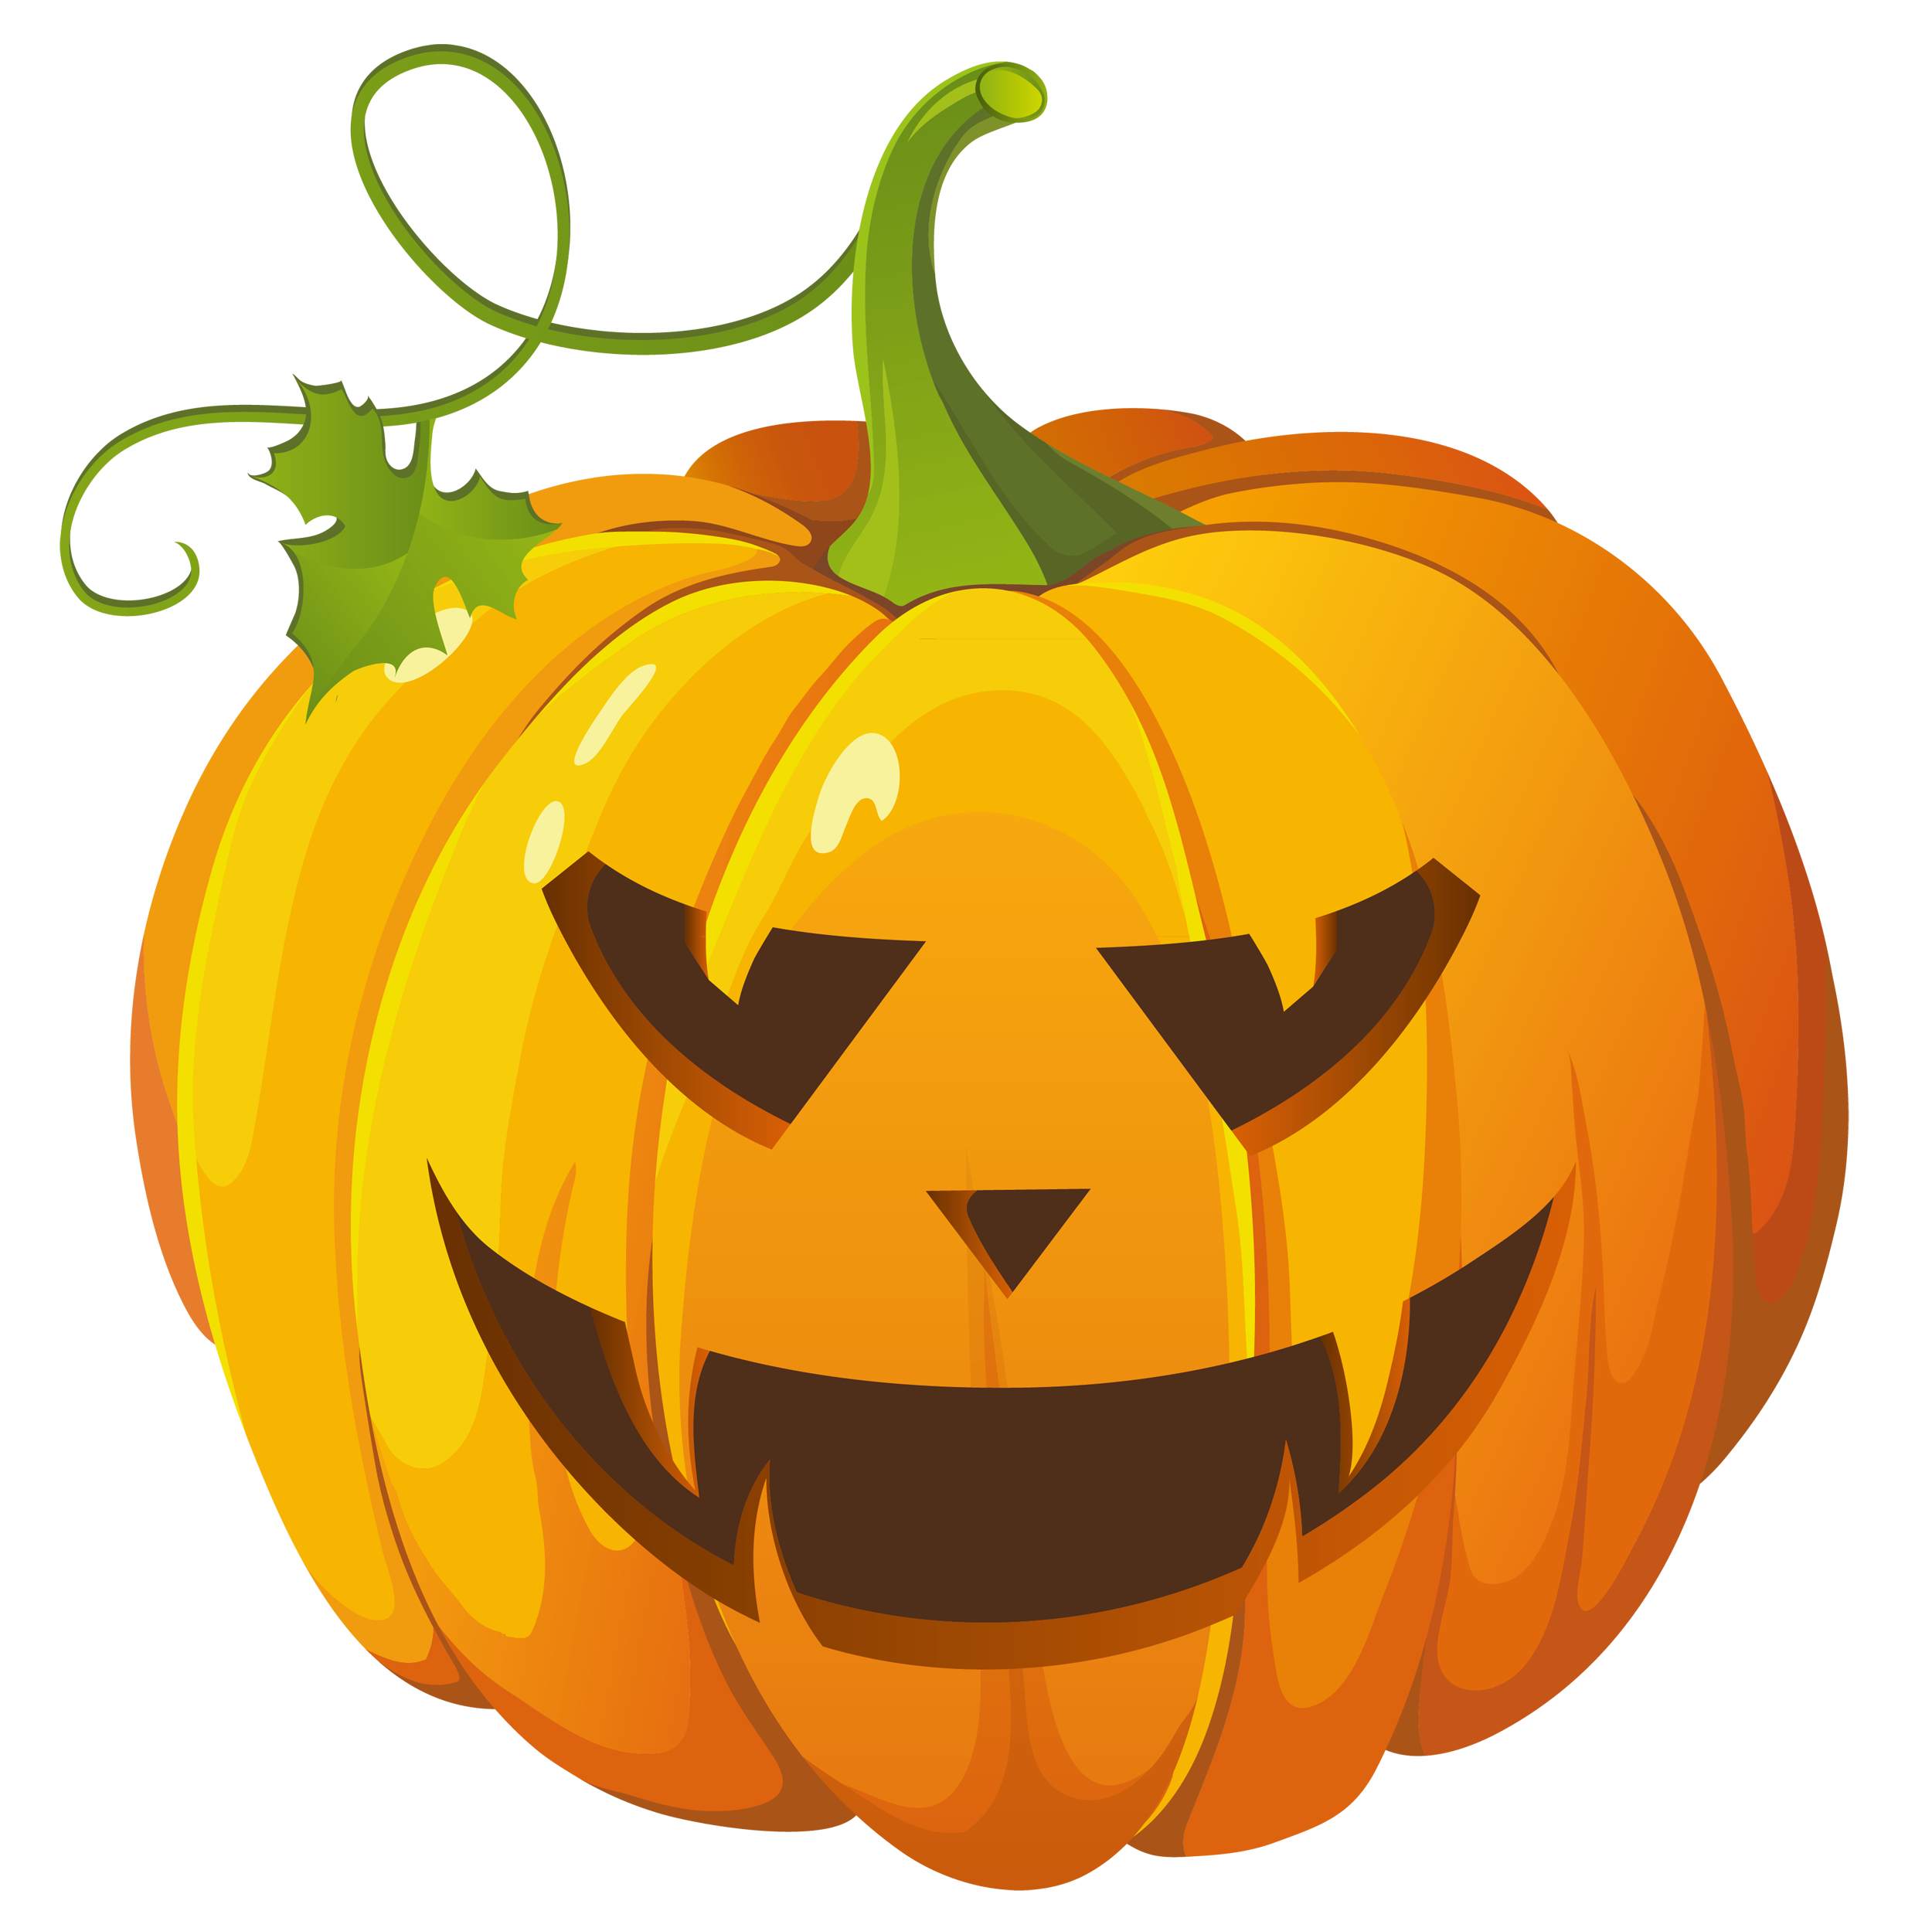 Free clipart of a pumpkin graphic free stock Free Pumpkin Clipart at GetDrawings.com | Free for personal use Free ... graphic free stock